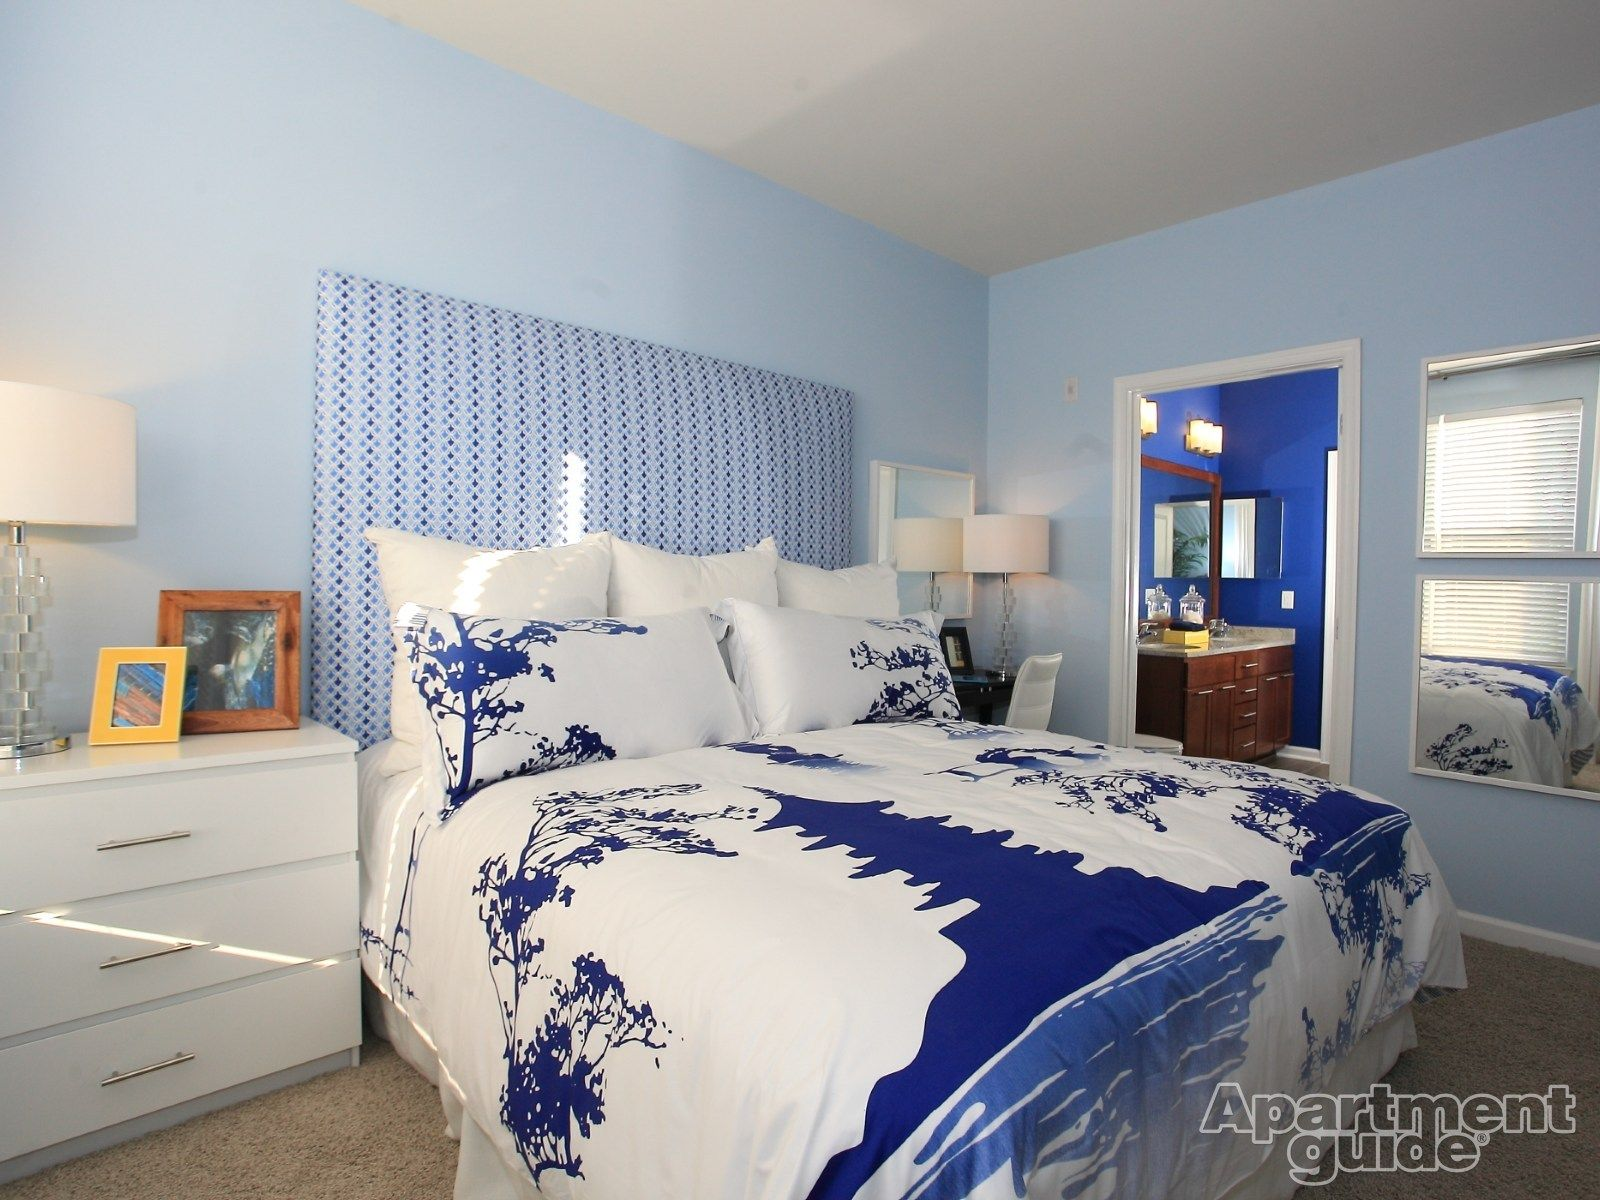 Serenity Place at Dorsey Ridge Apartment guide